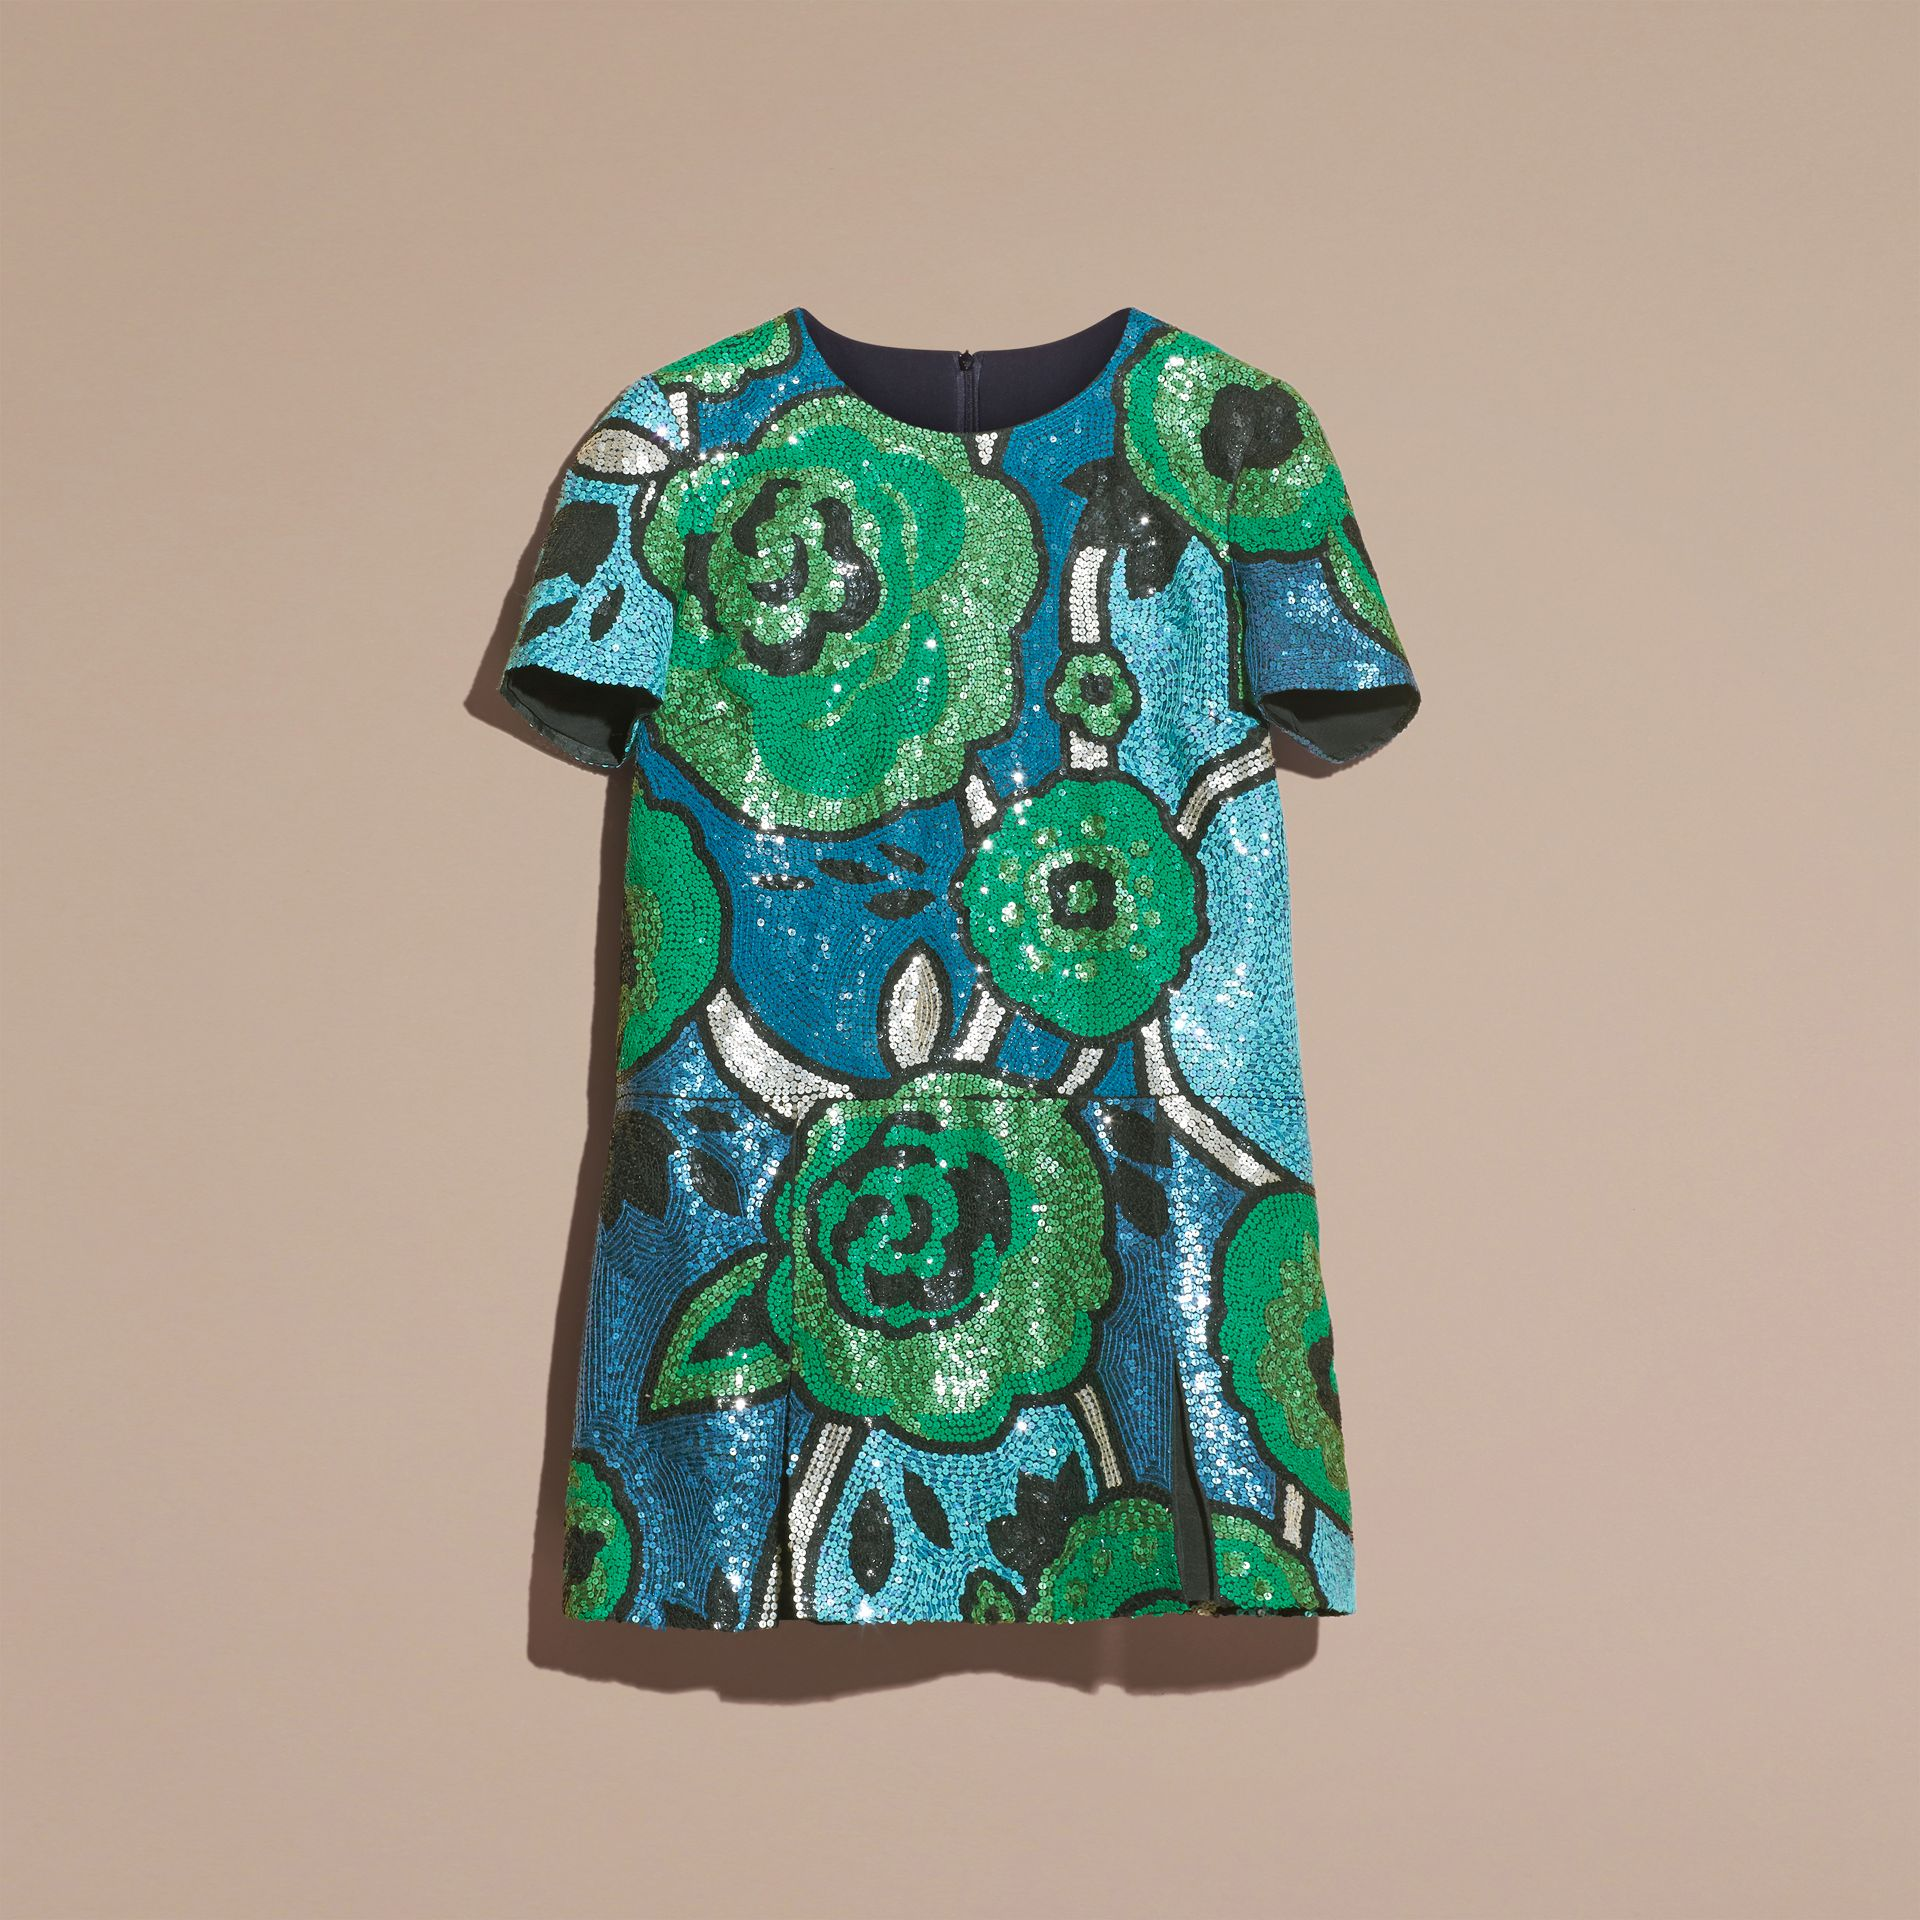 Bright green Hand-embroidered Sequin T-shirt Dress Bright Green - gallery image 4